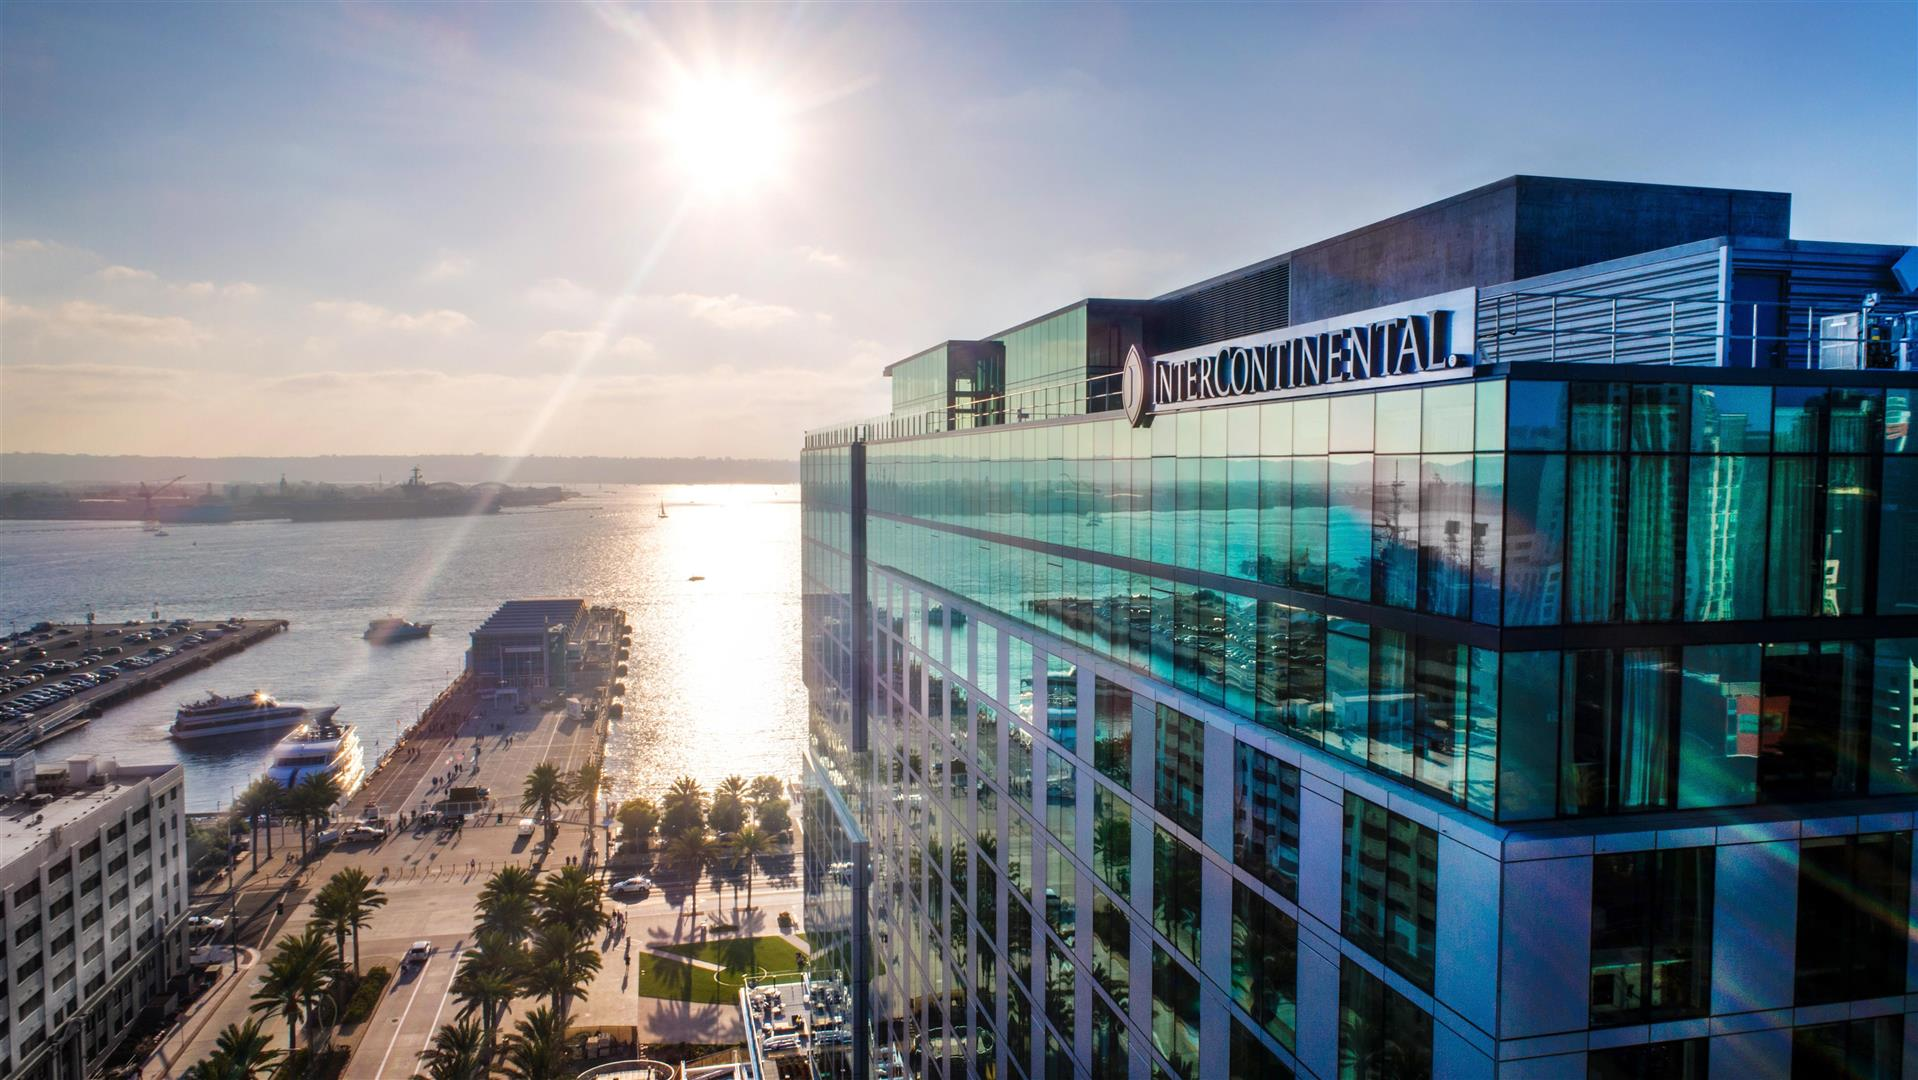 Meetings and events at InterContinental San Diego, San Diego